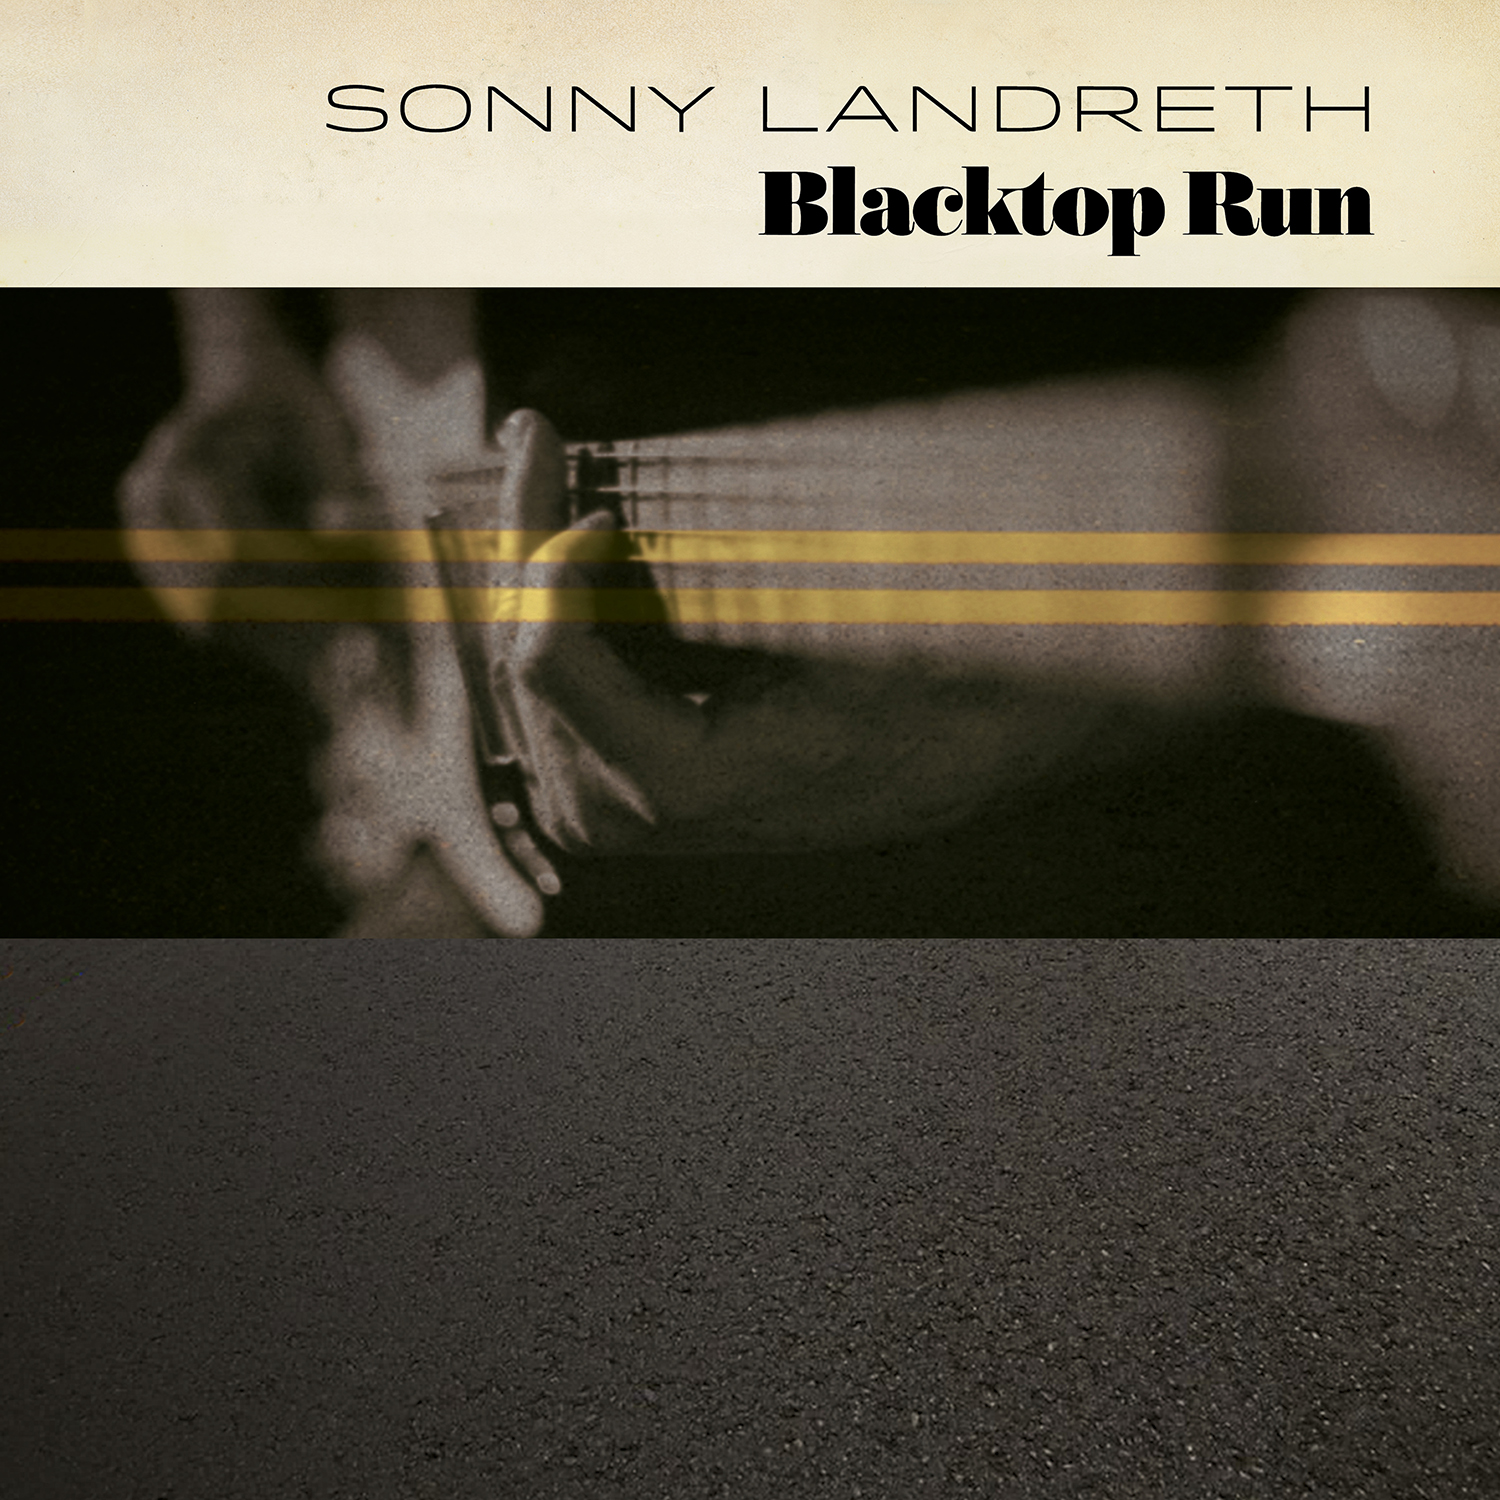 Louisiana Slide-Guitar Icon Sonny Landreth's New Album 'Blacktop Run' Drops tomorrow, February 21st